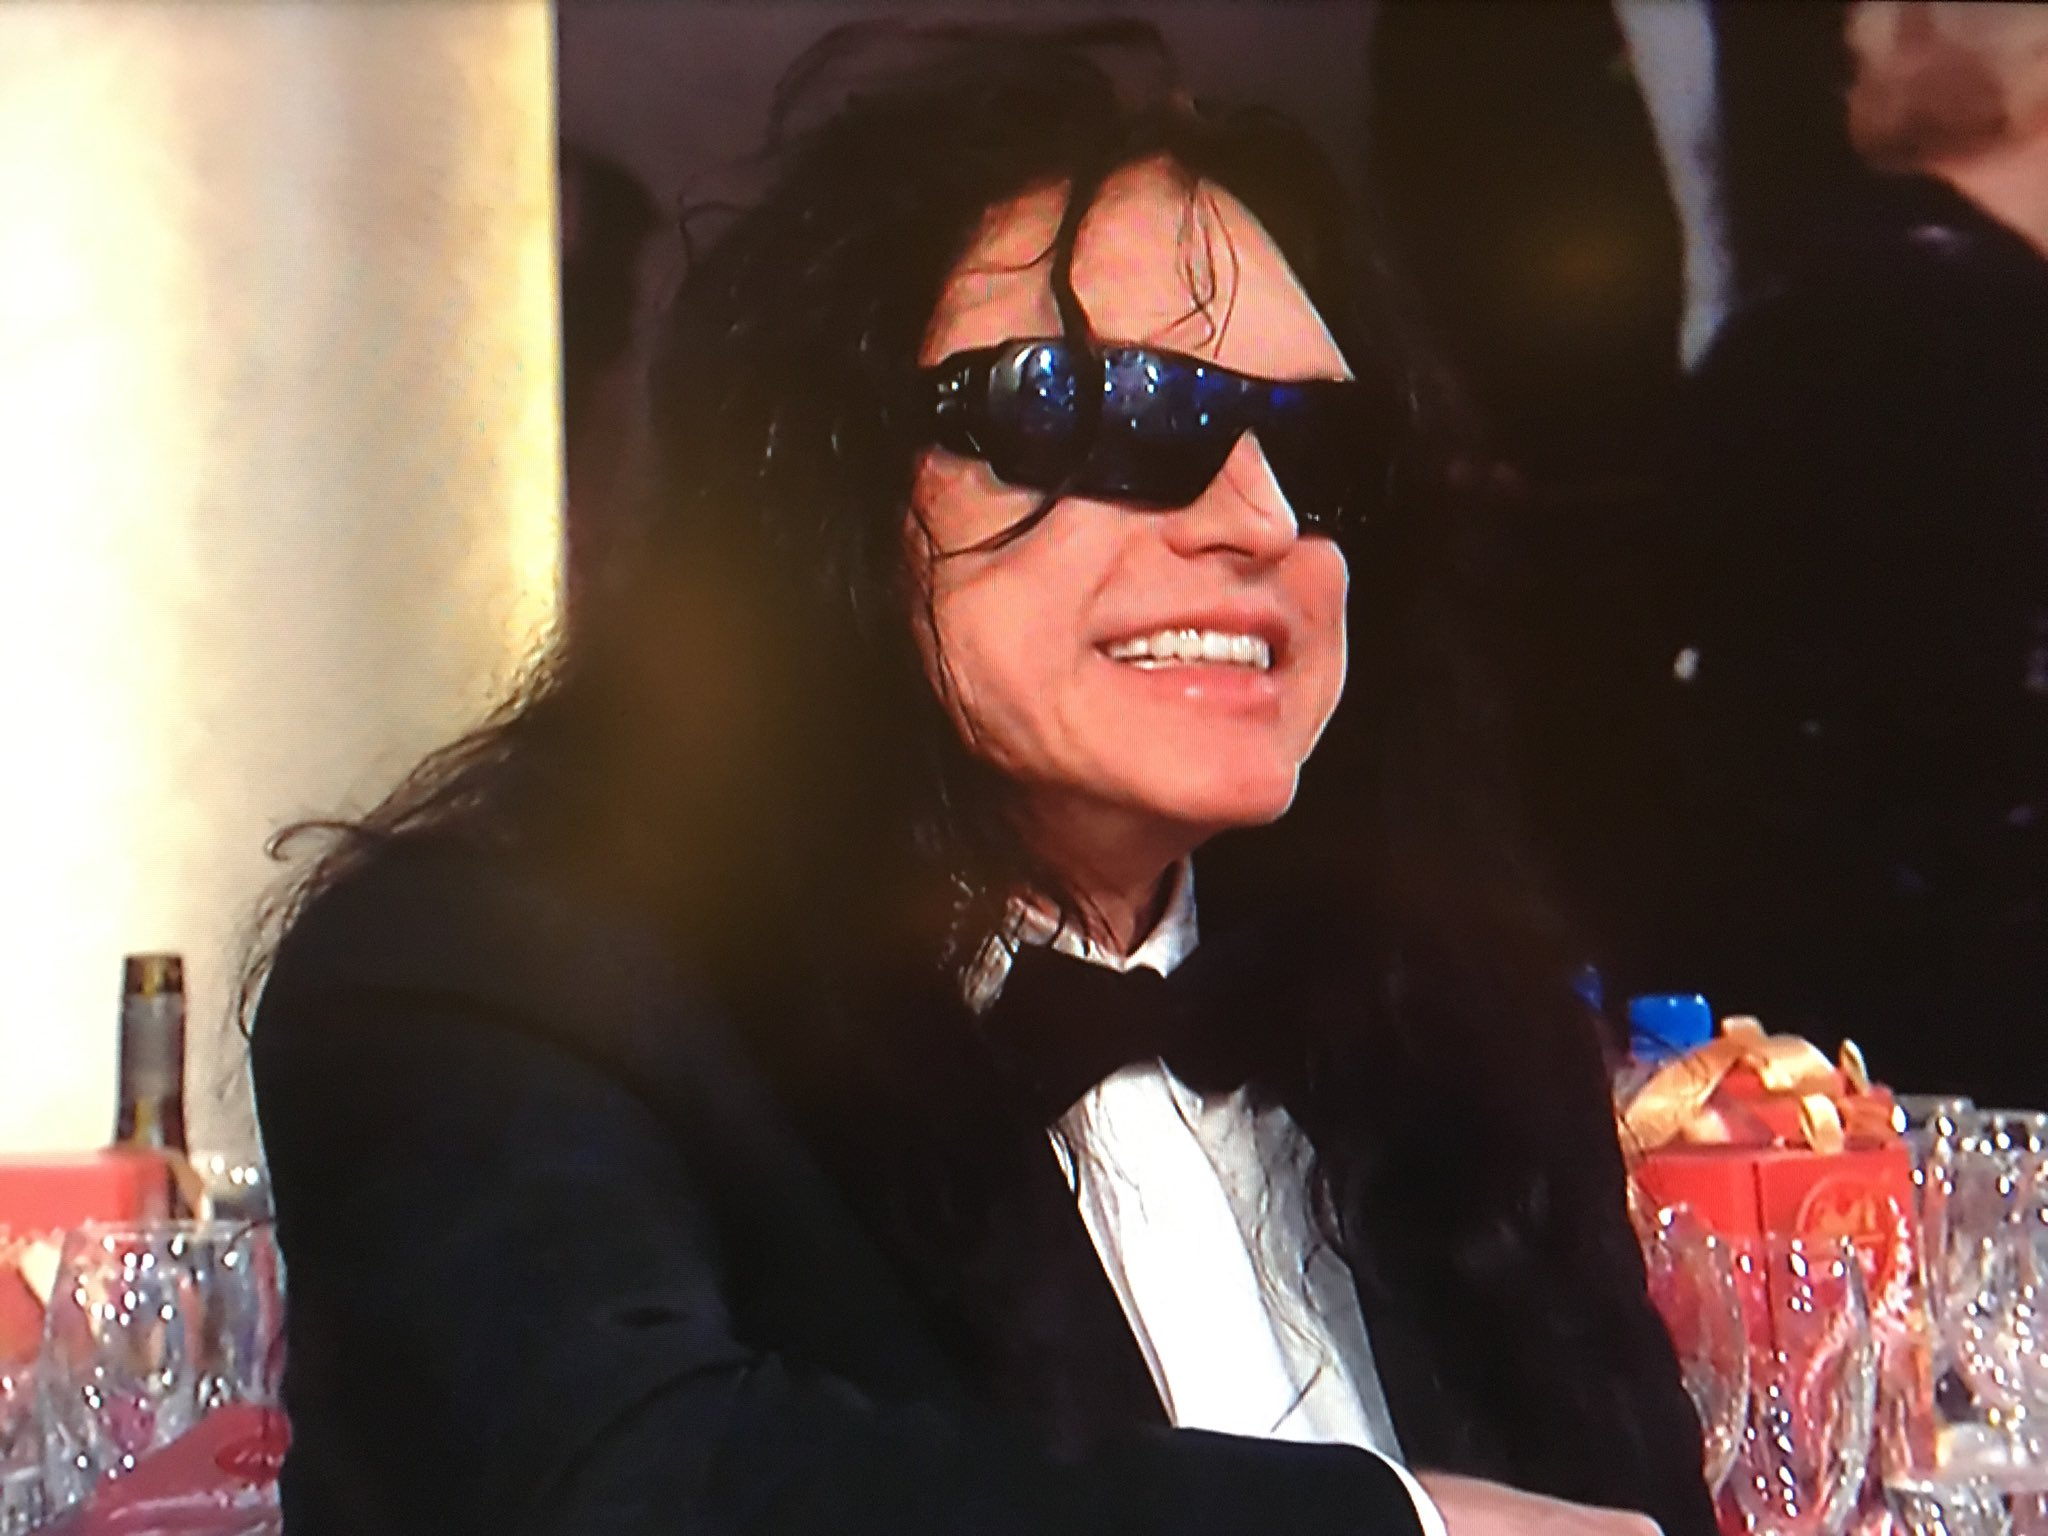 Tommy Wiseau having serious second thoughts https://t.co/rKDcsSlN0W